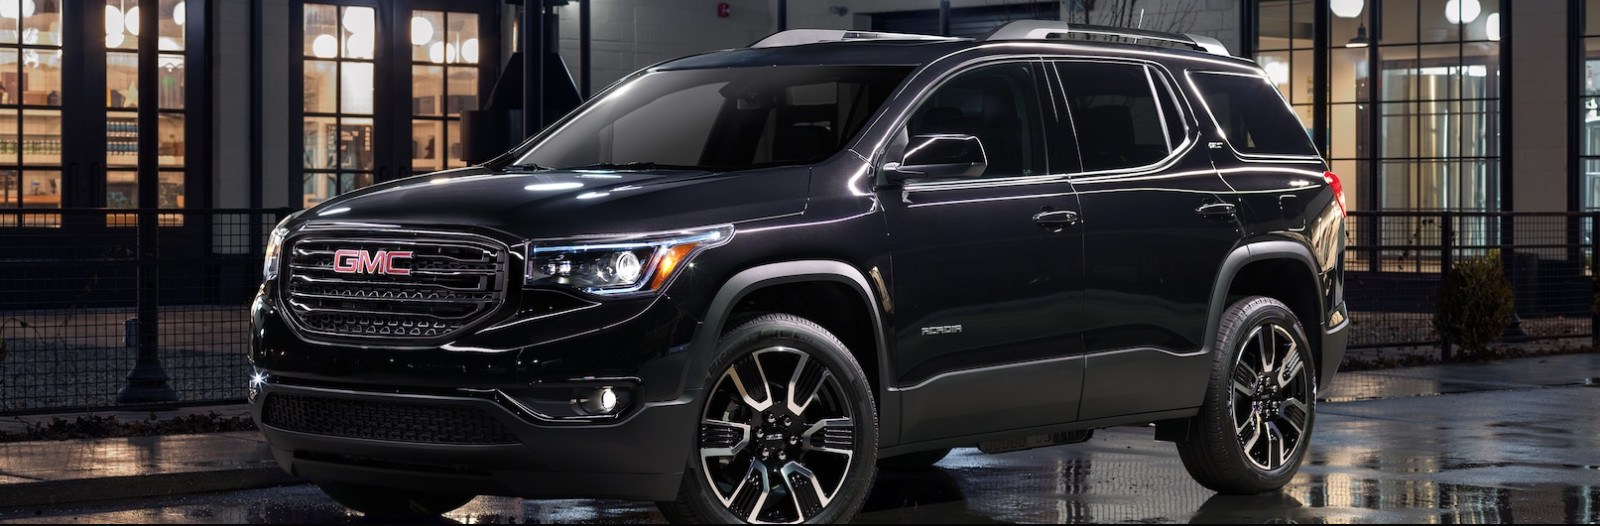 2019 gmc acadia for sale near aberdeen, sd